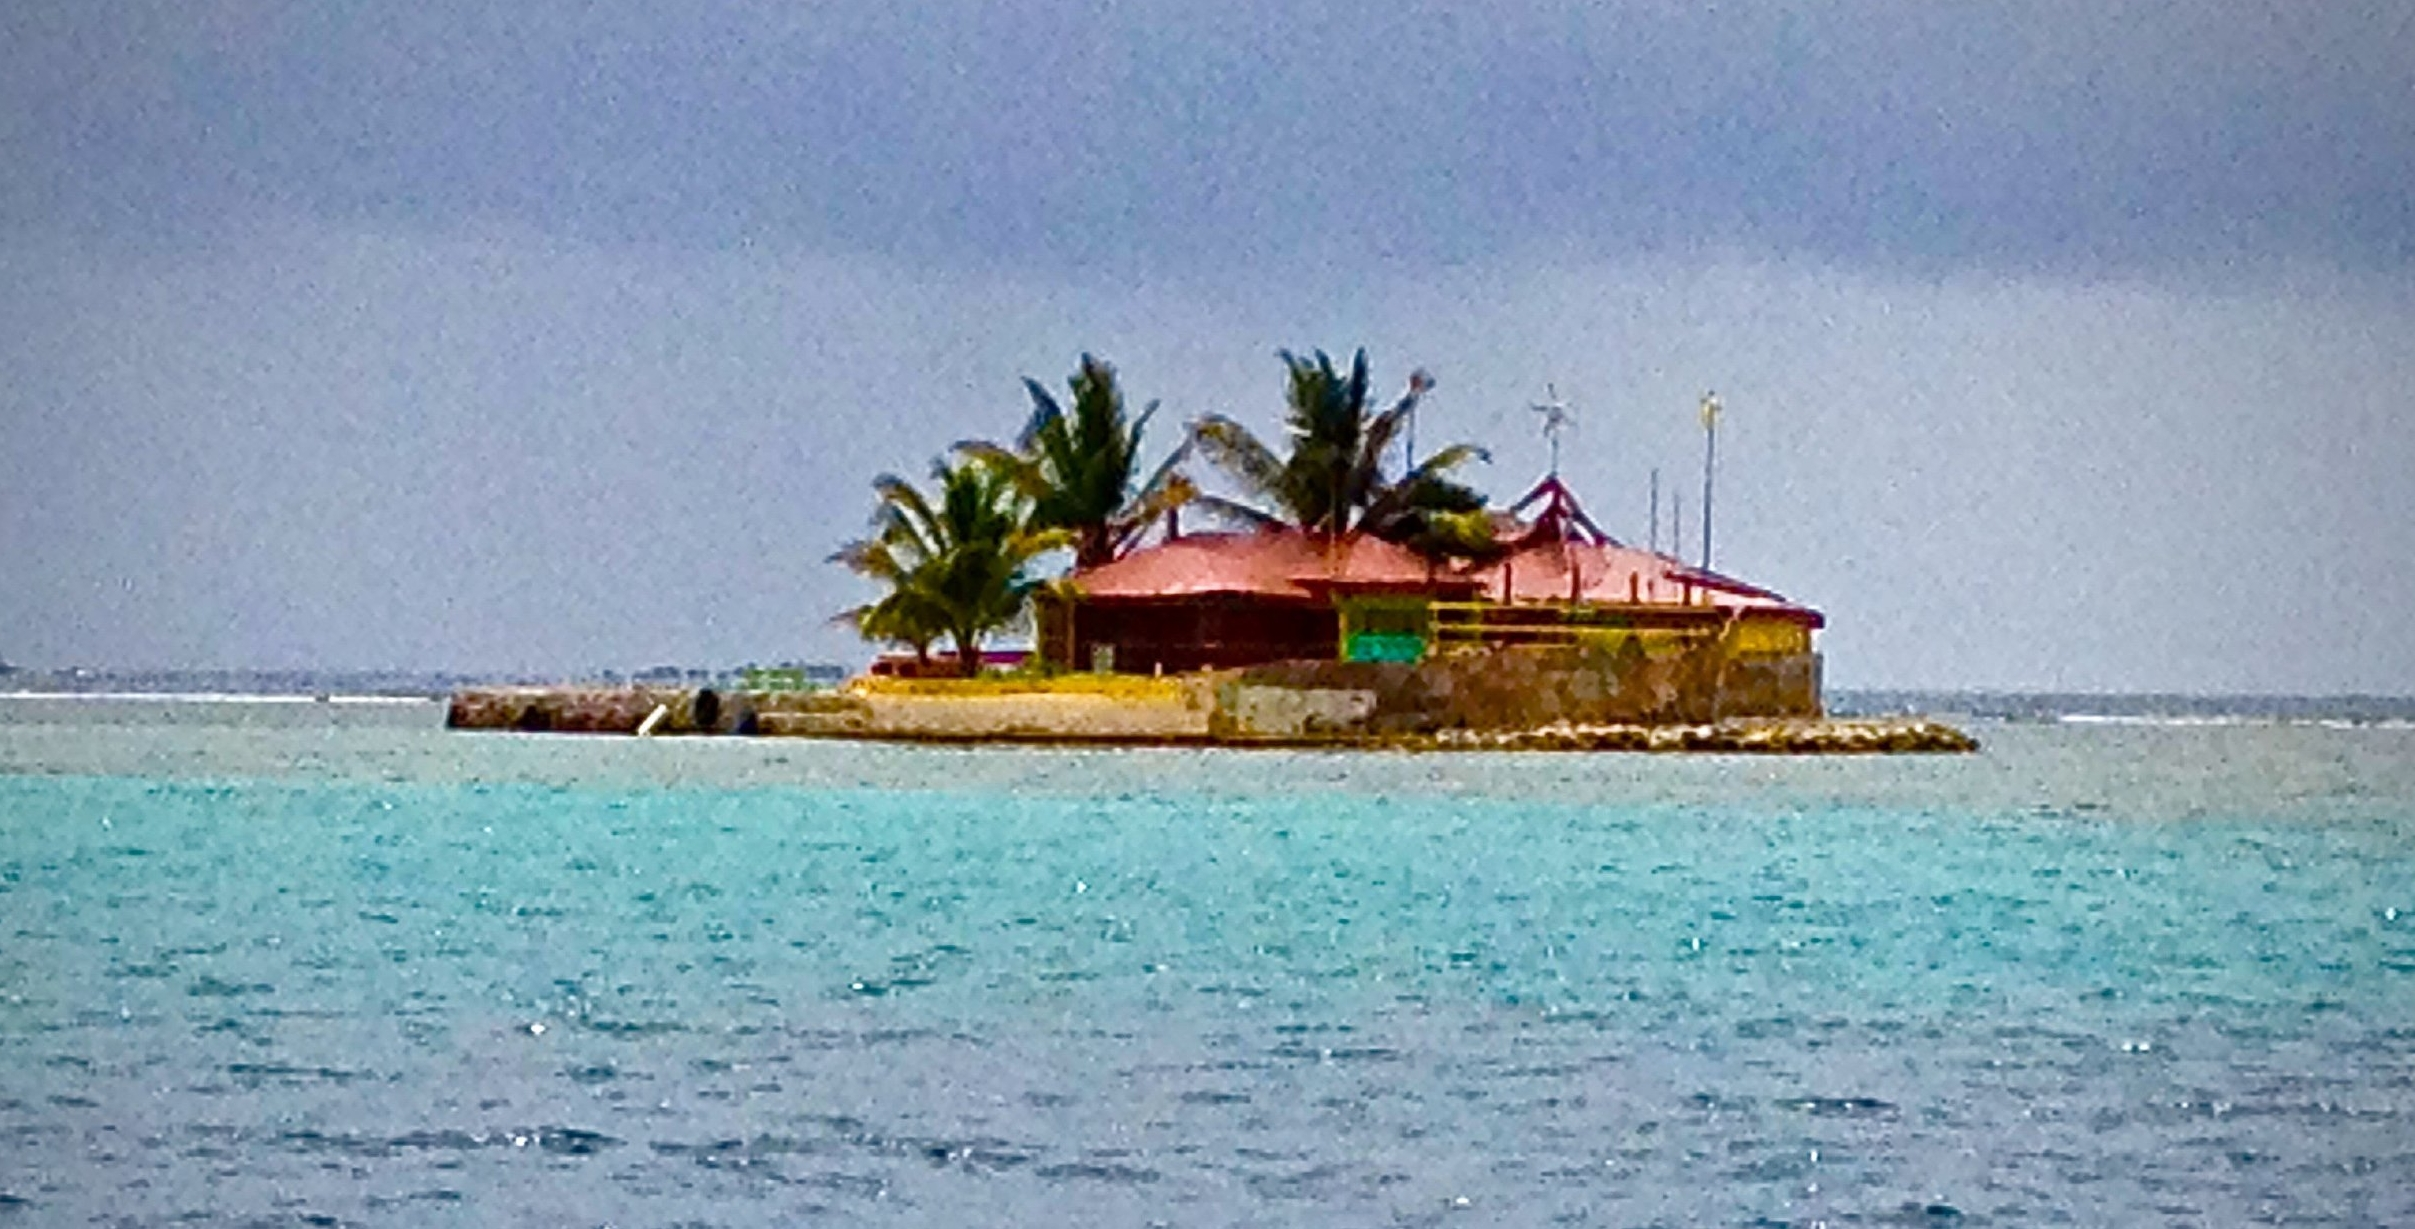 Happy Island, St. Vincent and the Grenadines, July 18th, 2013